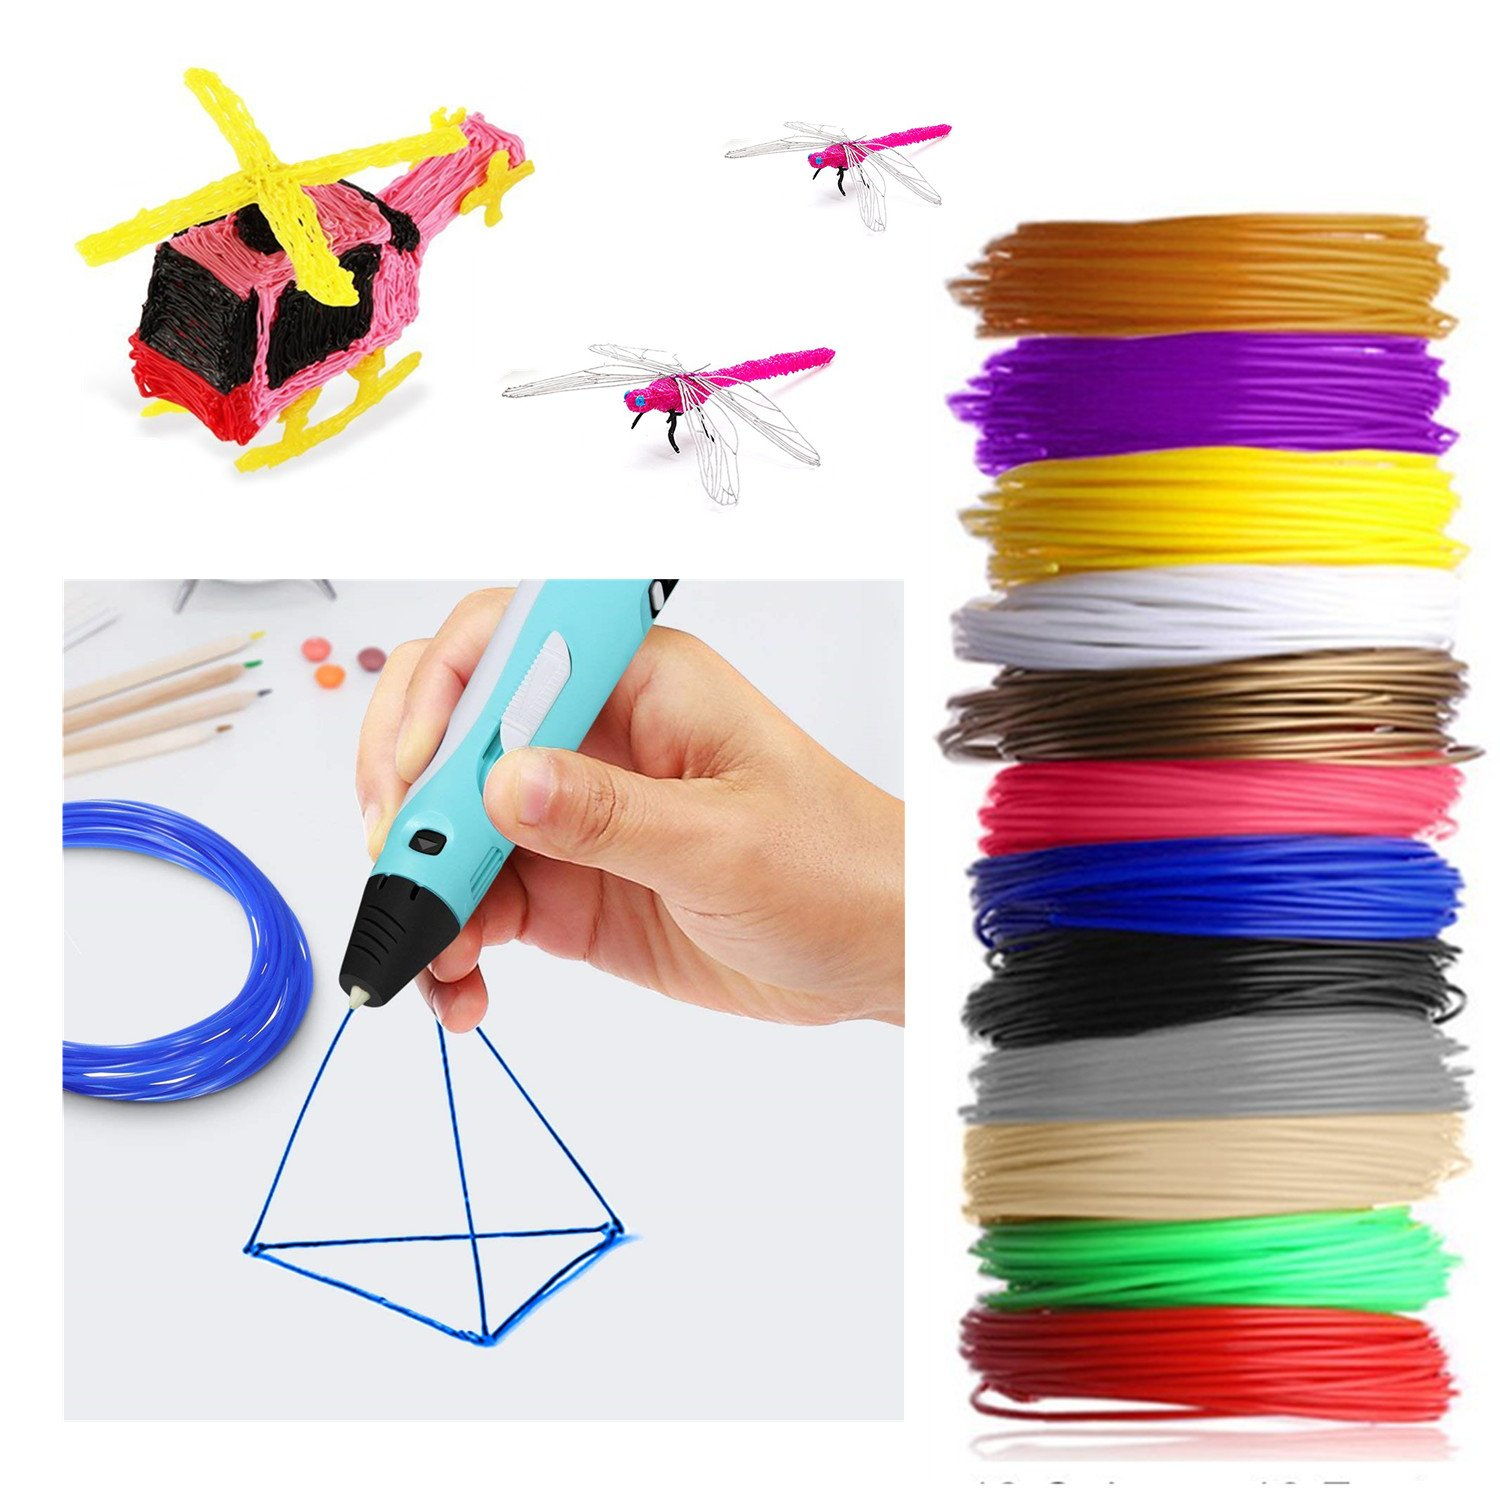 3D Pen Filament 24 Colours 5m/Colour TICOSH 3D PLA Printing Material Refills 1.75mm Multicolour for 20 Different Colours 16 Feet Each Prefect DIY for Kids and Adults Fit for Polaroid Aerb NEXGADGET Tecboss Amzdeal SOYAN Intelligent 3D Pen